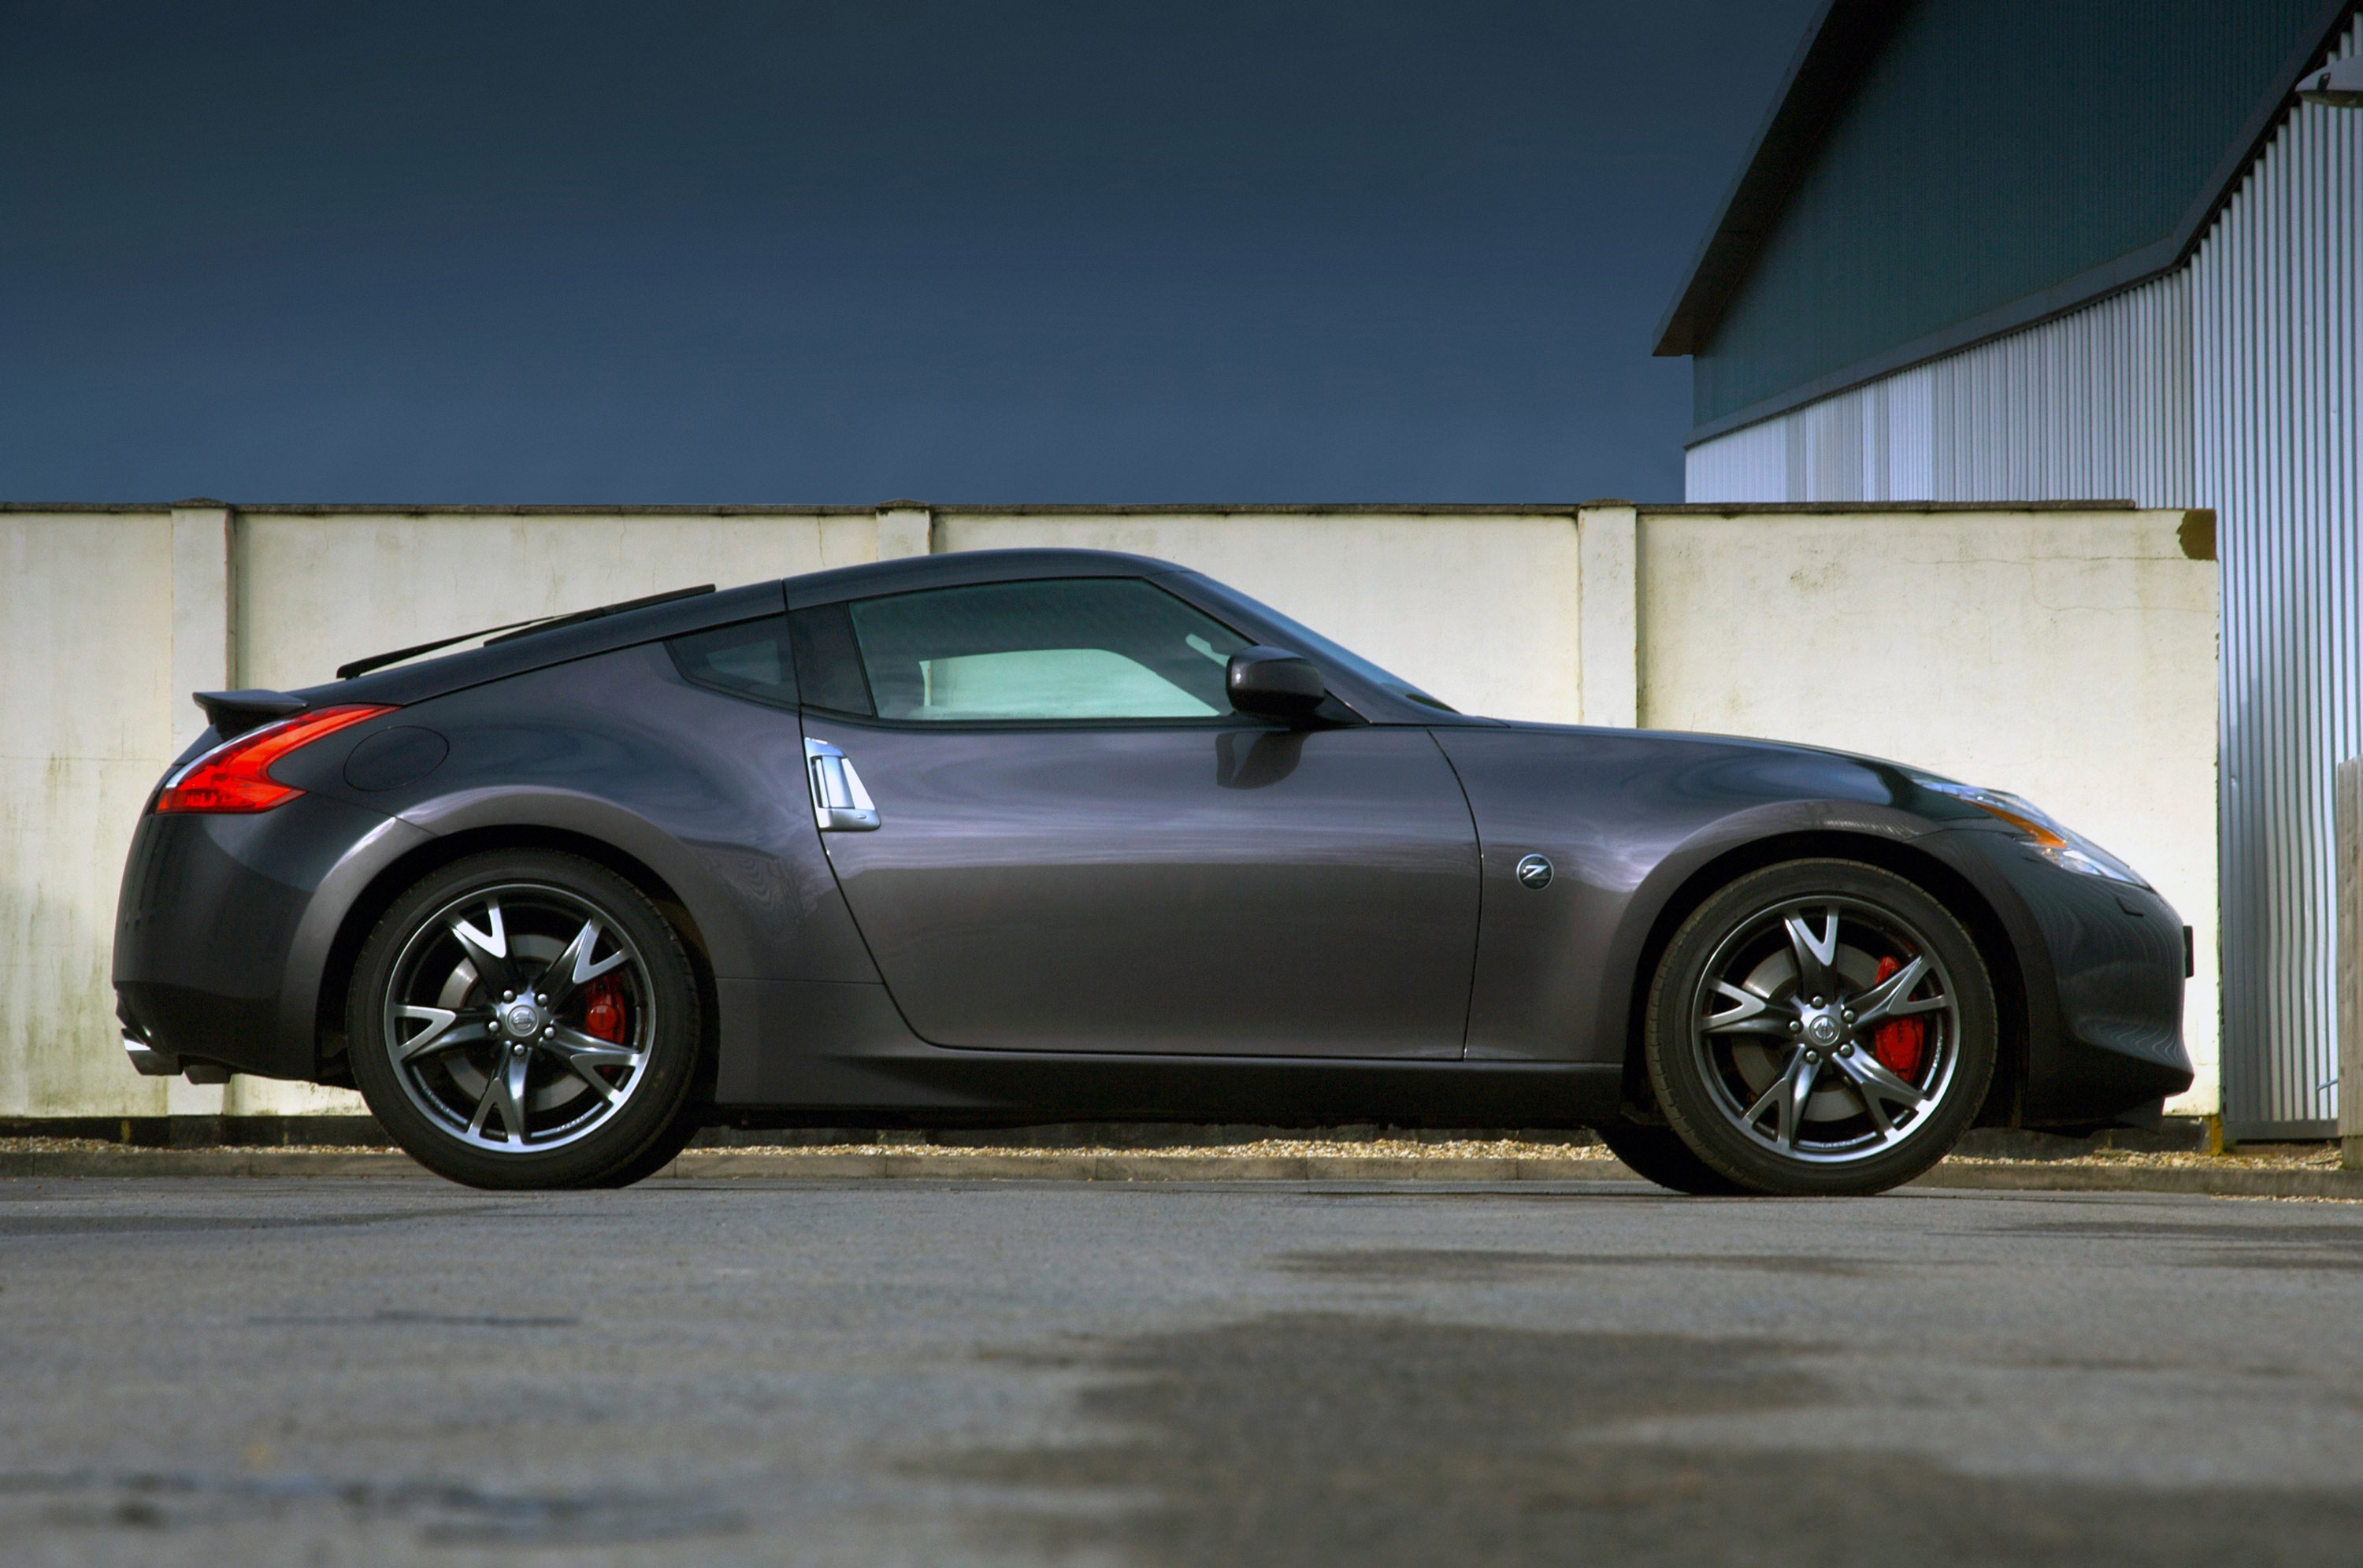 Nissan unwrapped a 370Z 40th Anniversary Black Edition for Europe